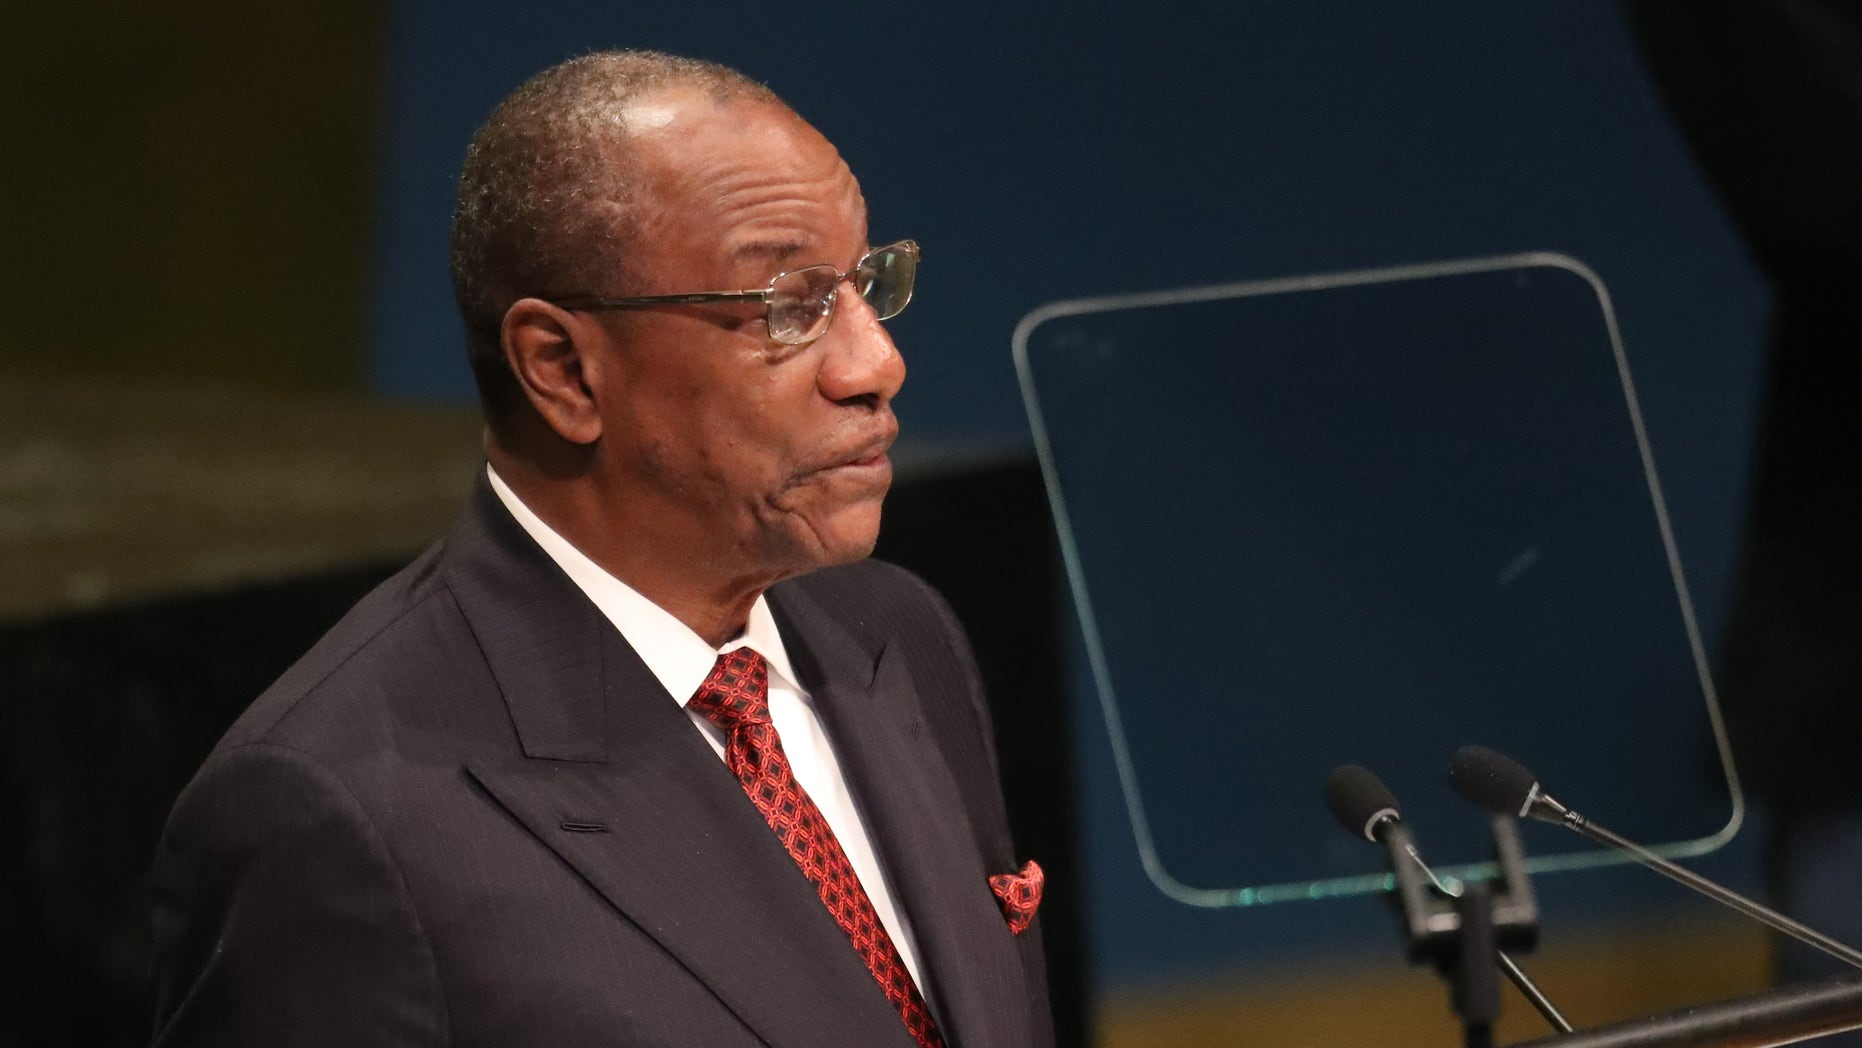 President Alpha Conde of Guinea addresses the 71st United Nations General Assembly in Manhattan, New York, U.S.